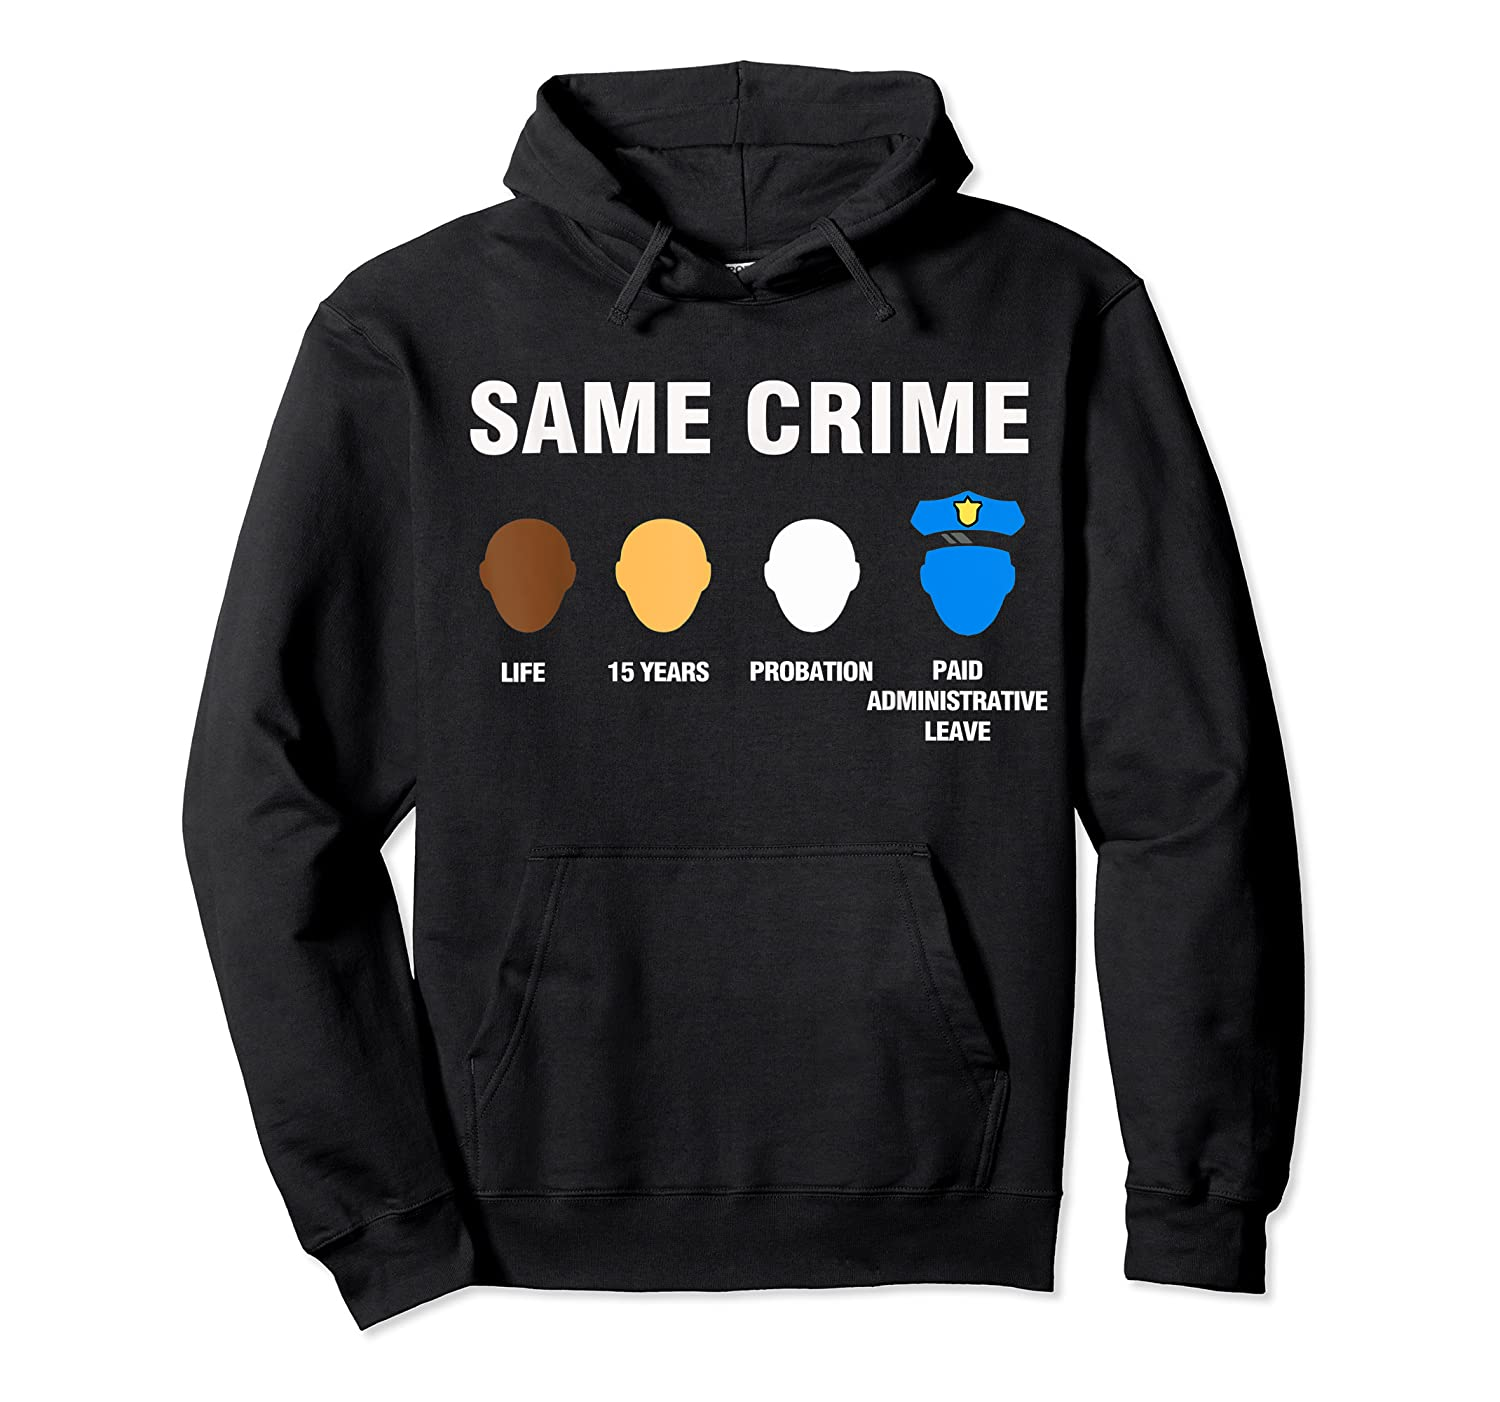 Same Crime Life 15 Years Probation Paid Administrative Leave Shirts Unisex Pullover Hoodie